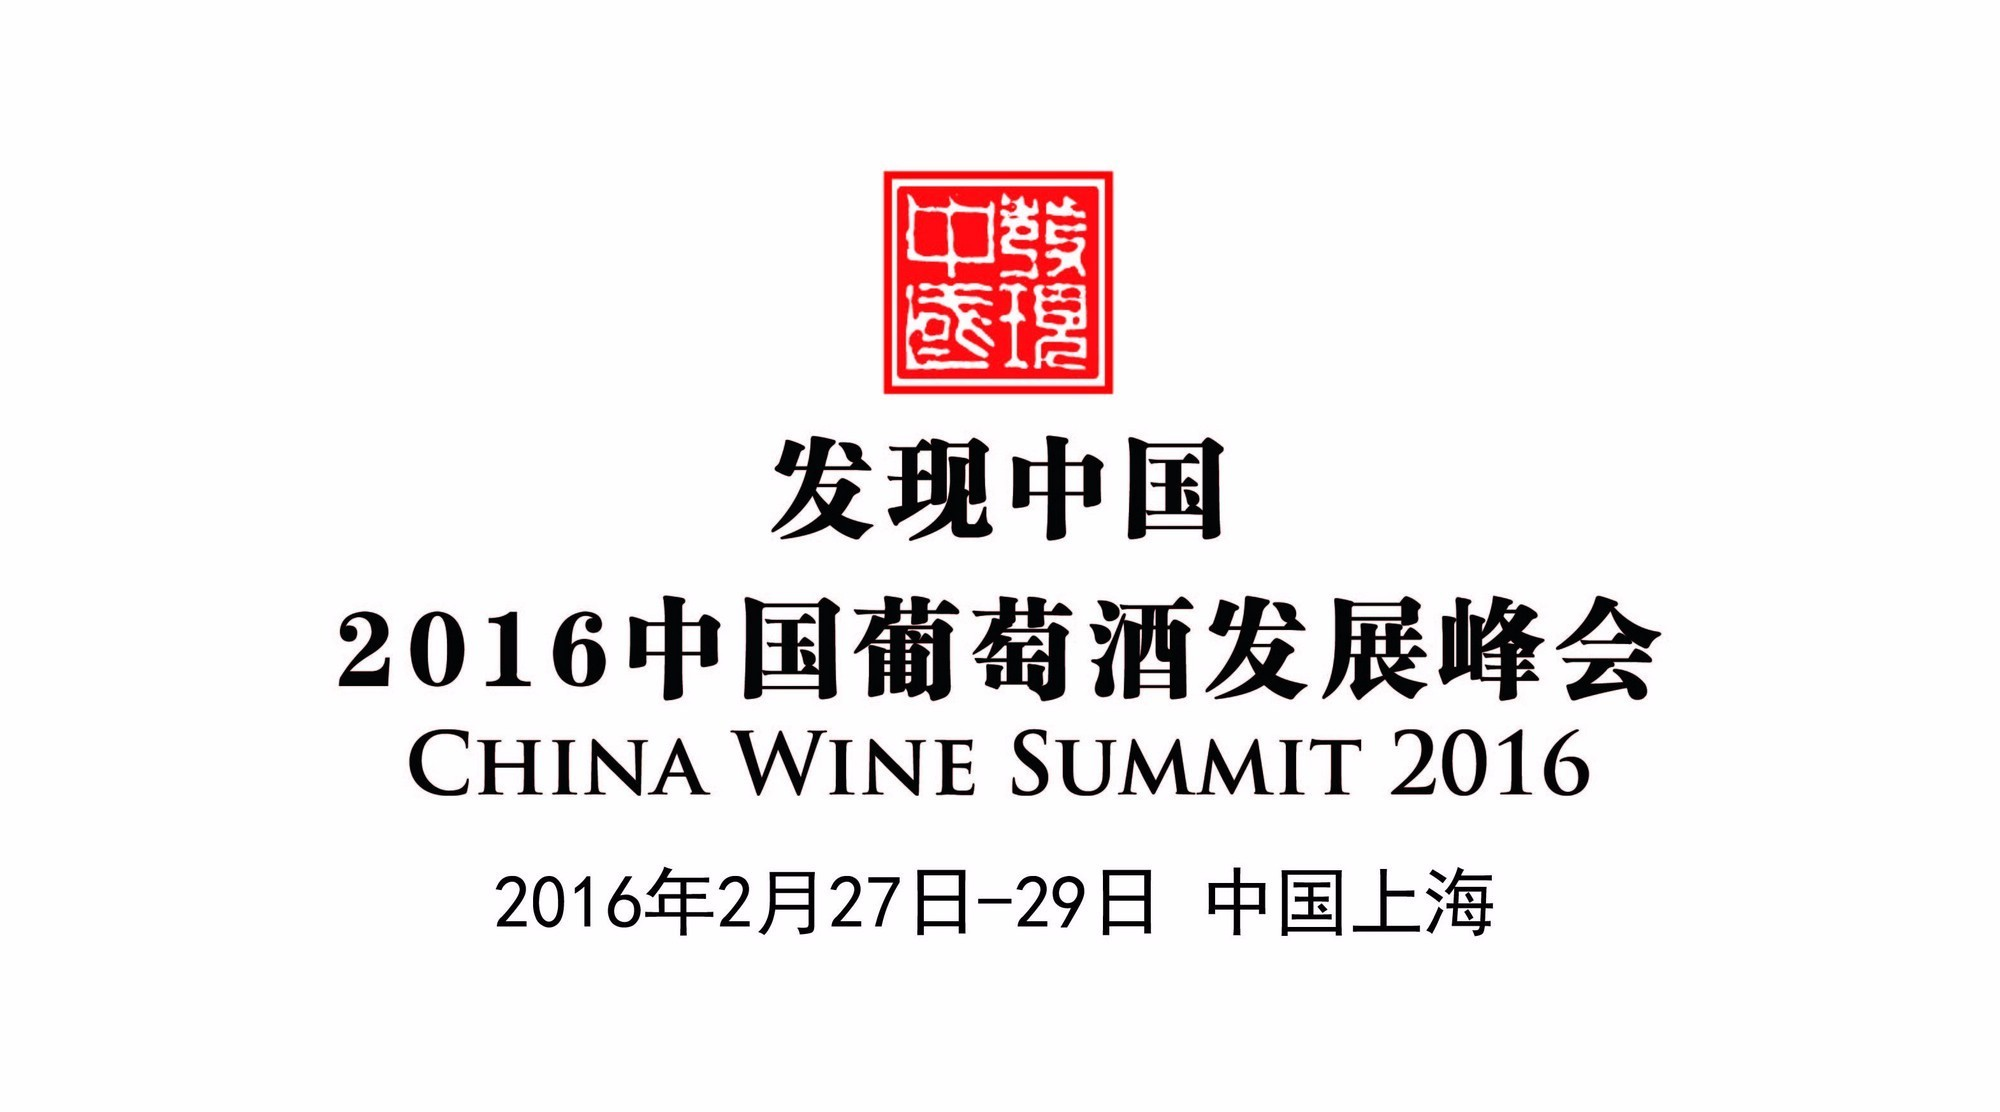 China Wine Summit